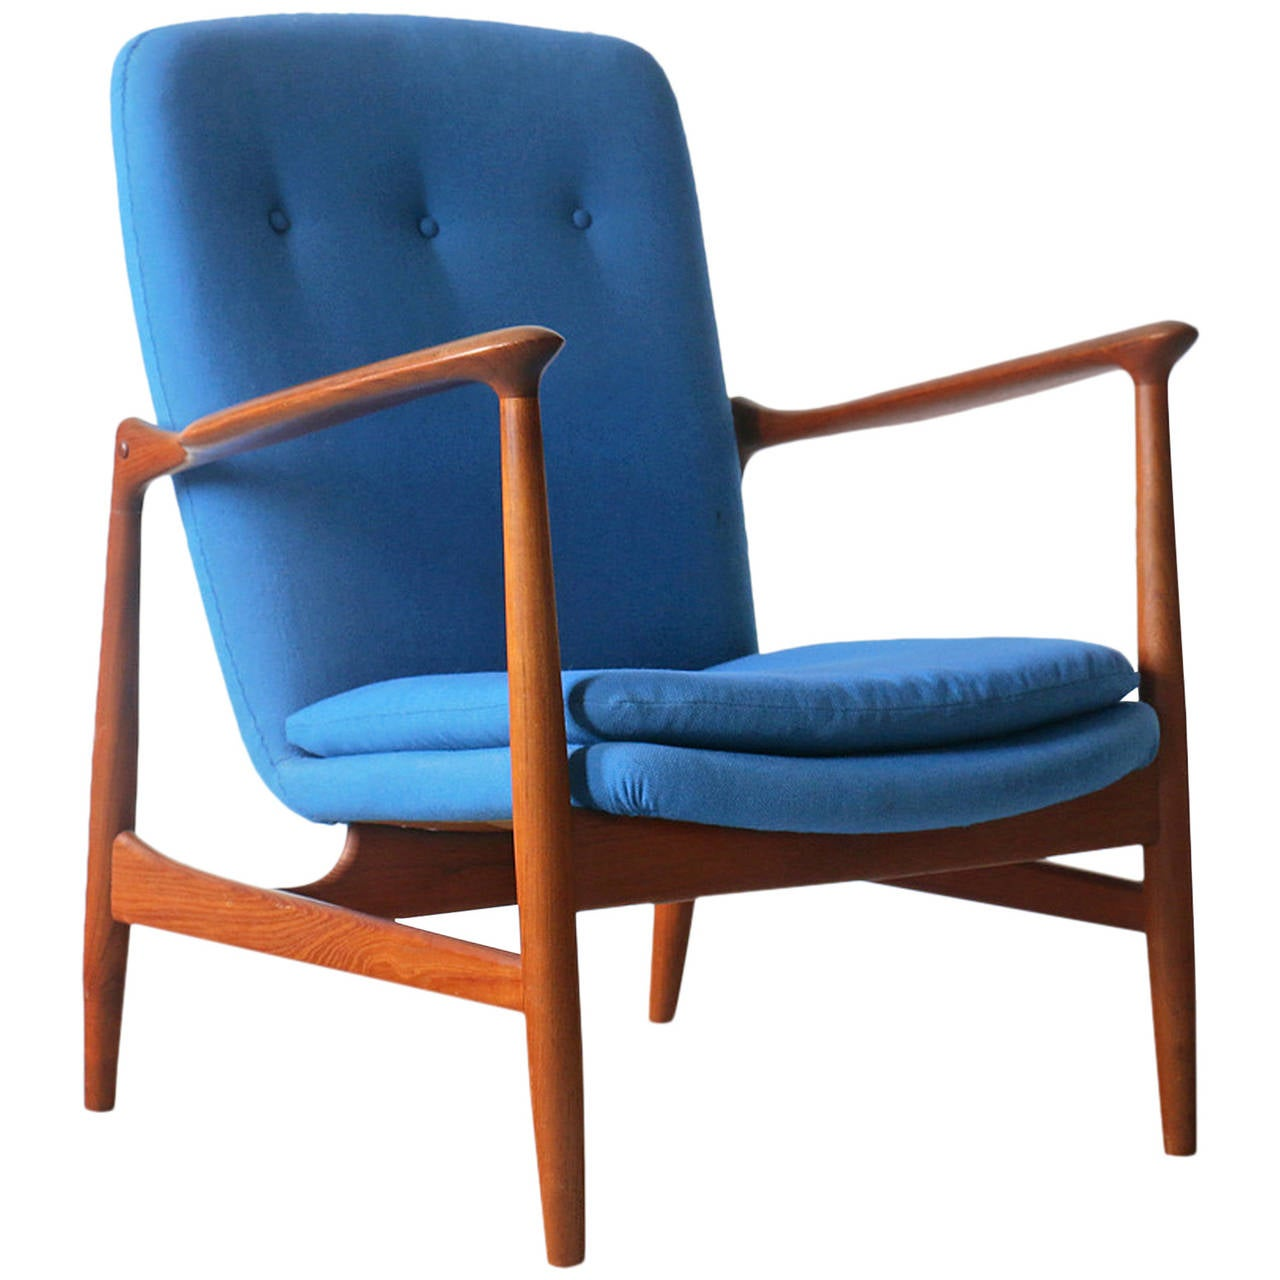 Antique Sale Finn Juhl Bovirke Vintage Danish Teak Easy Chair Finn Juhl Bovirke Vintage Danish Teak Easy Chair Easy Chair Danish Easy Chair furniture Modern Easy Chair